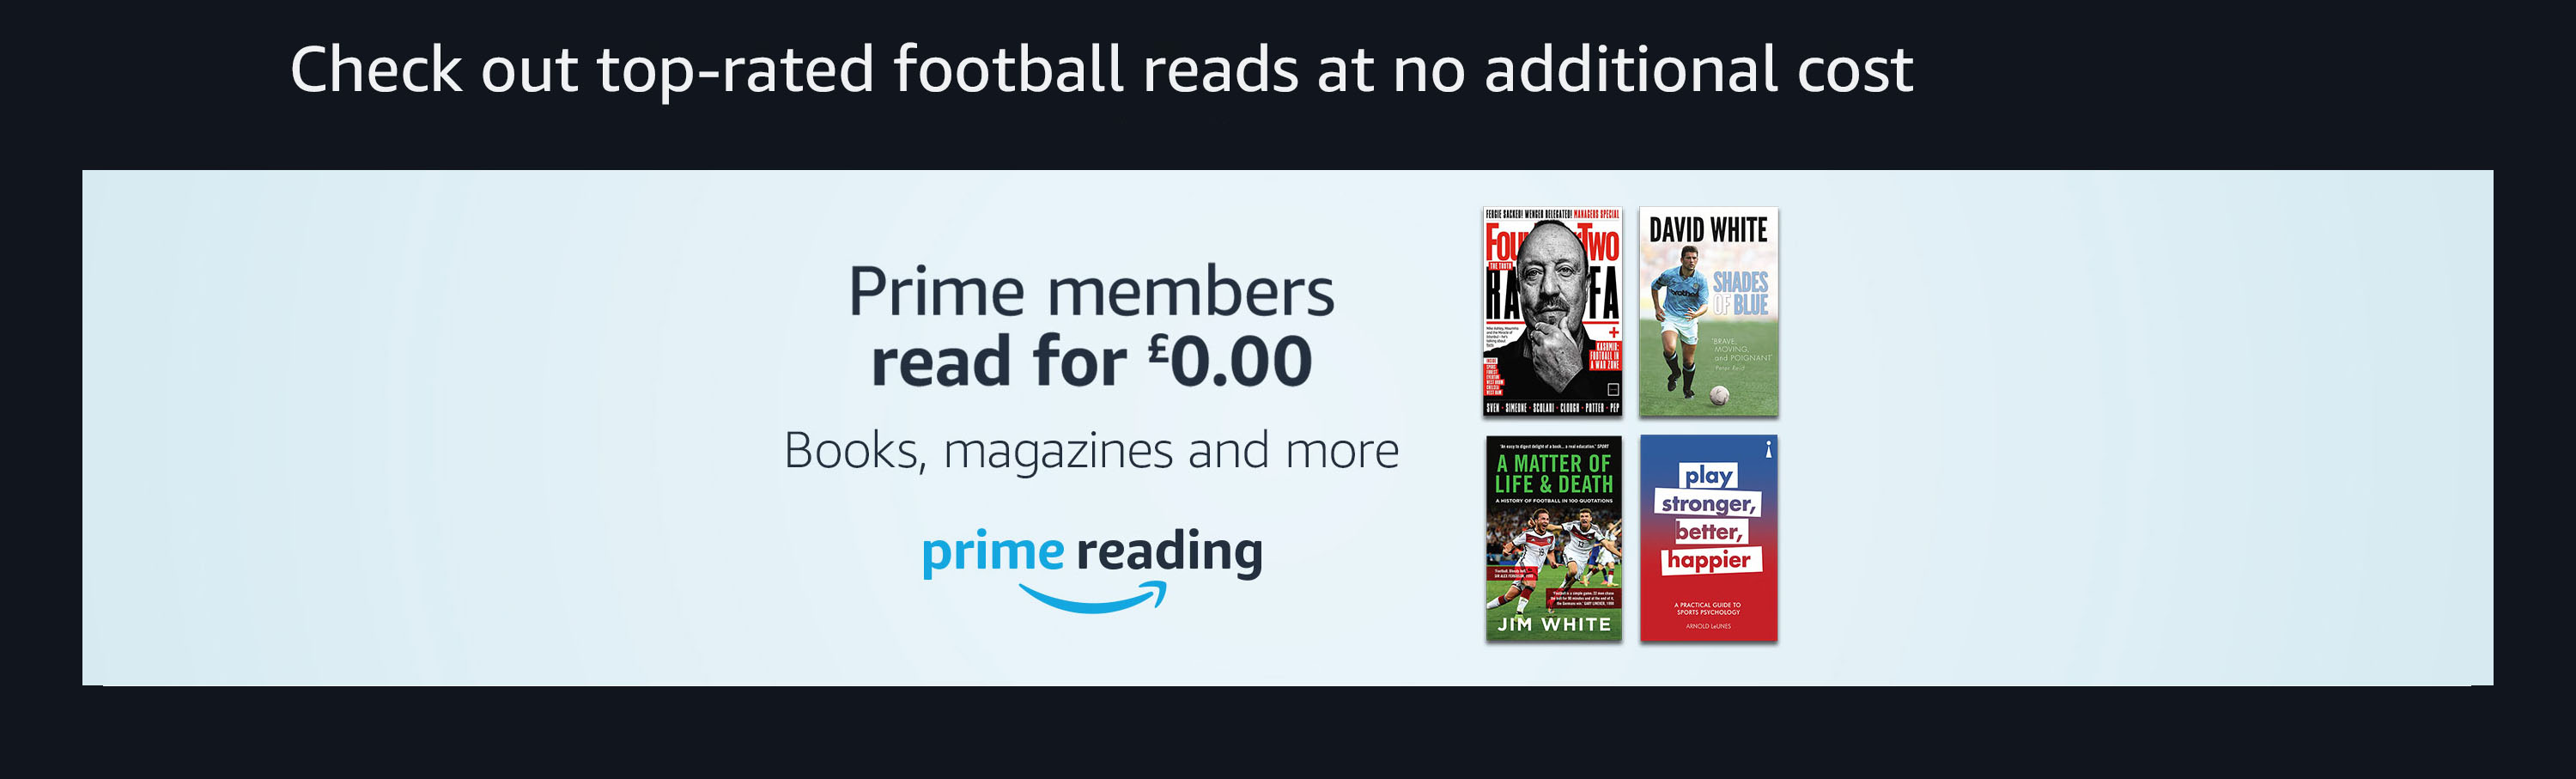 Check out top-rated football reads at no additional cost